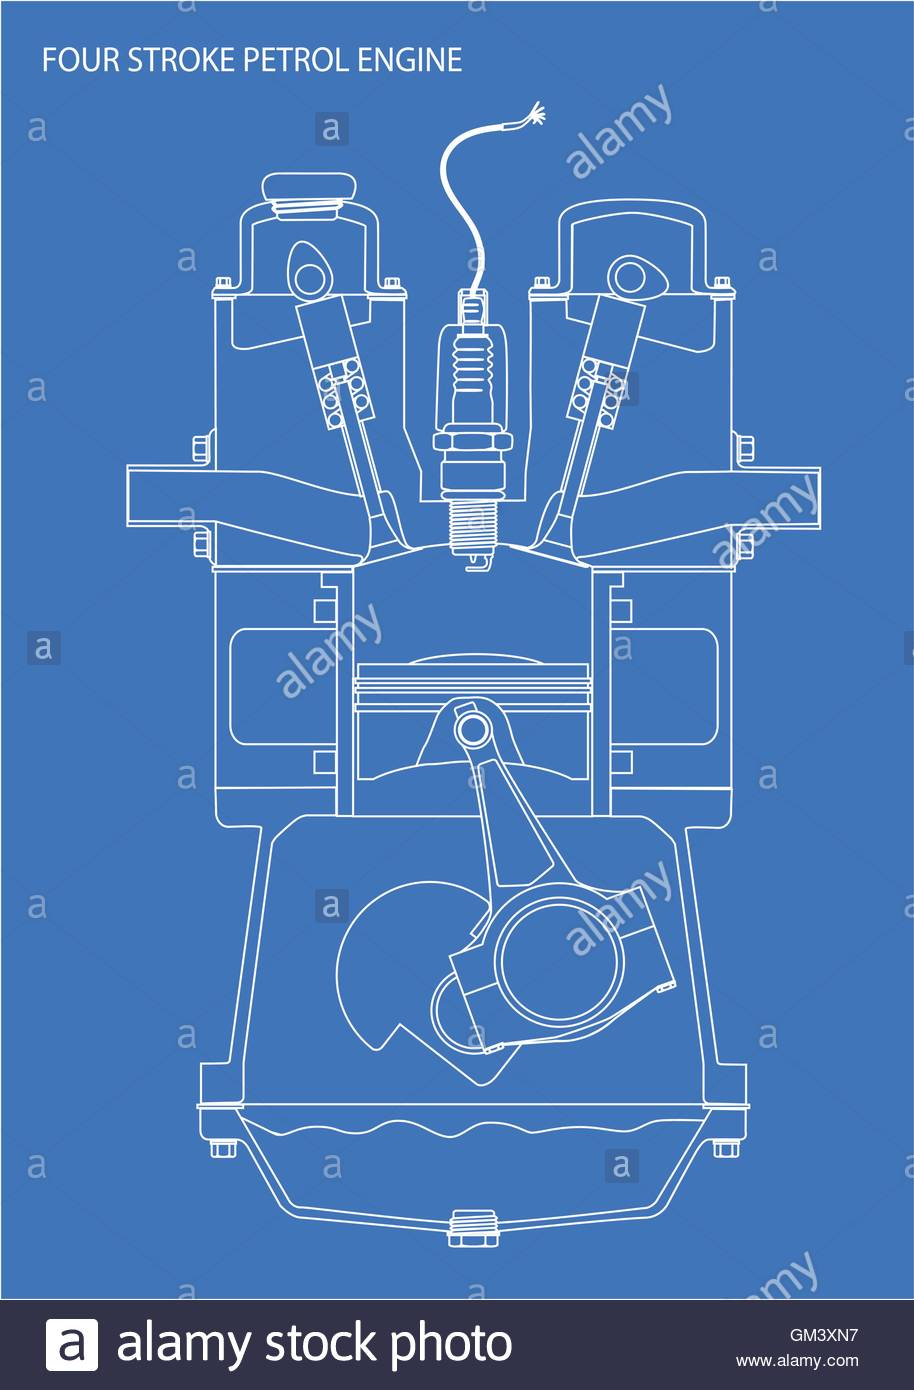 Engine line drawing blueprint stock vector art illustration engine line drawing blueprint malvernweather Images